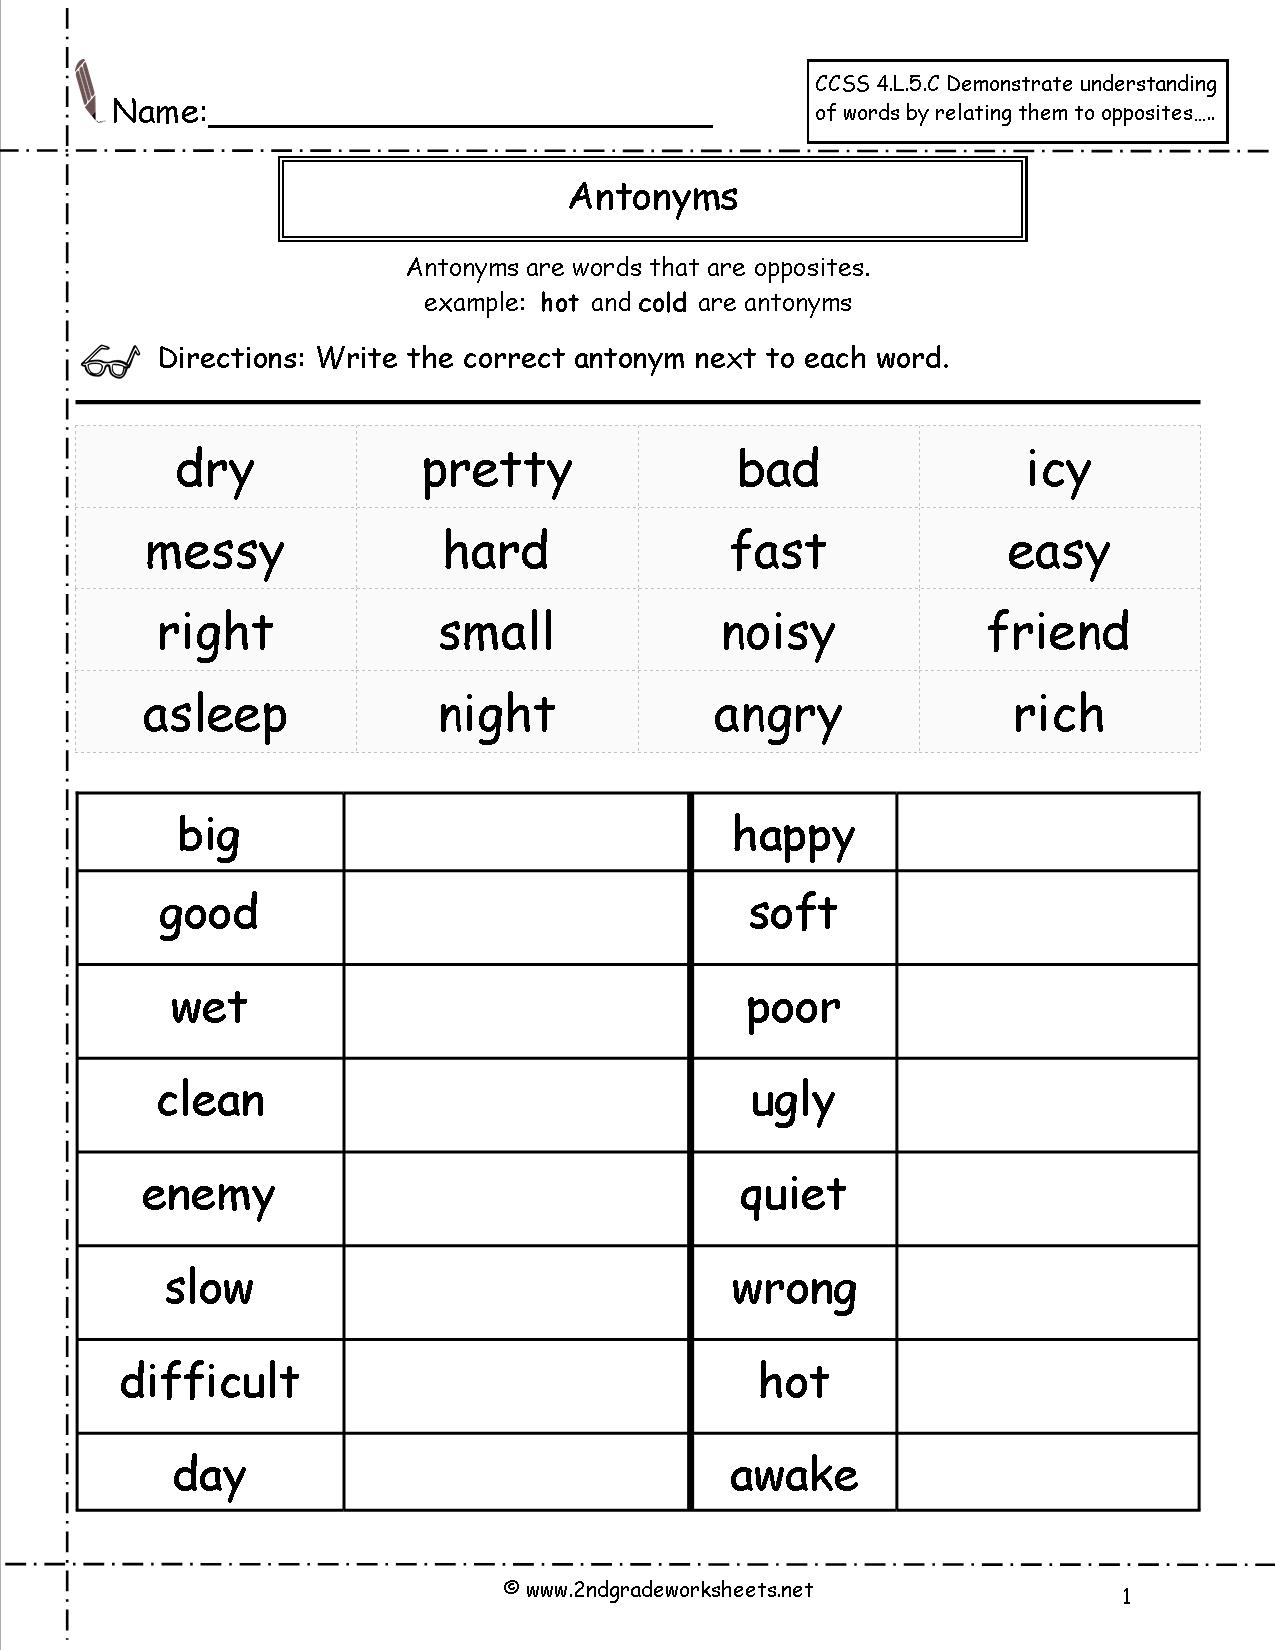 Free Language/grammar Worksheets And Printouts - Daily Language Review Grade 5 Free Printable